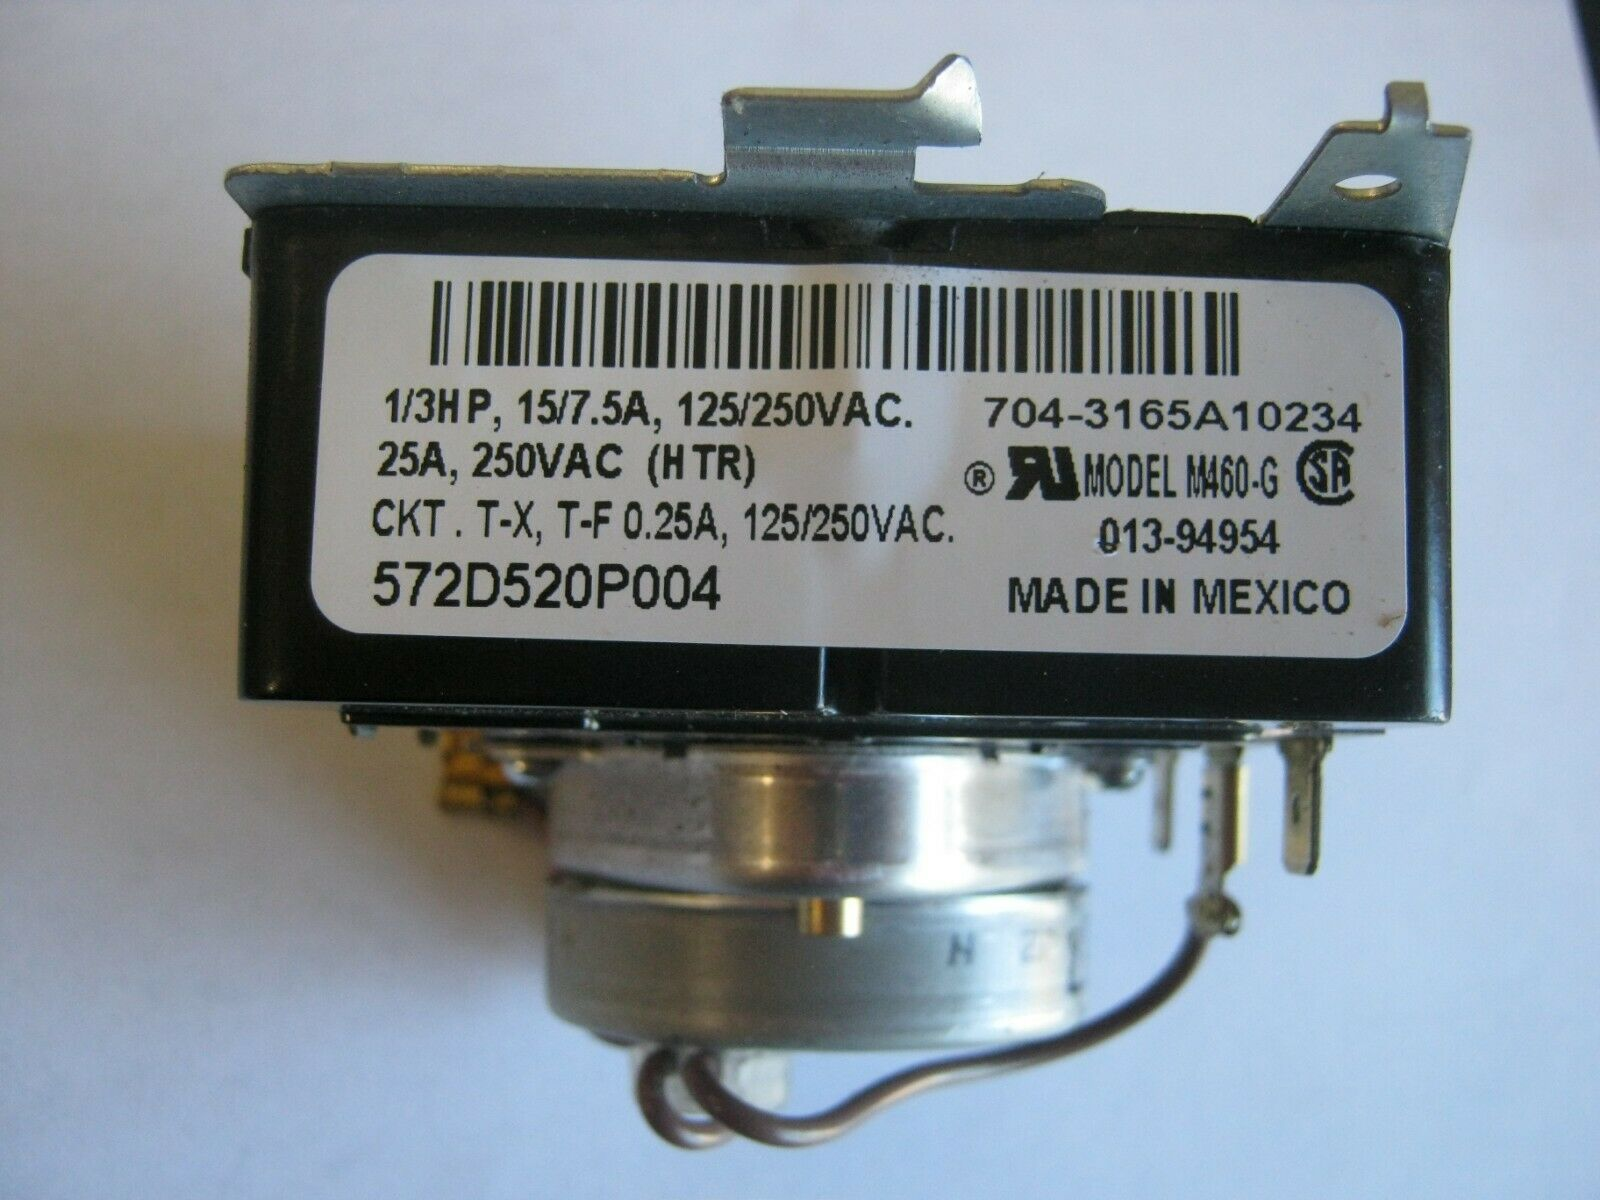 GE timer motor 572D520P004 dryer PLEASE READ DESC/VIEW ALL PICTURES M460-G